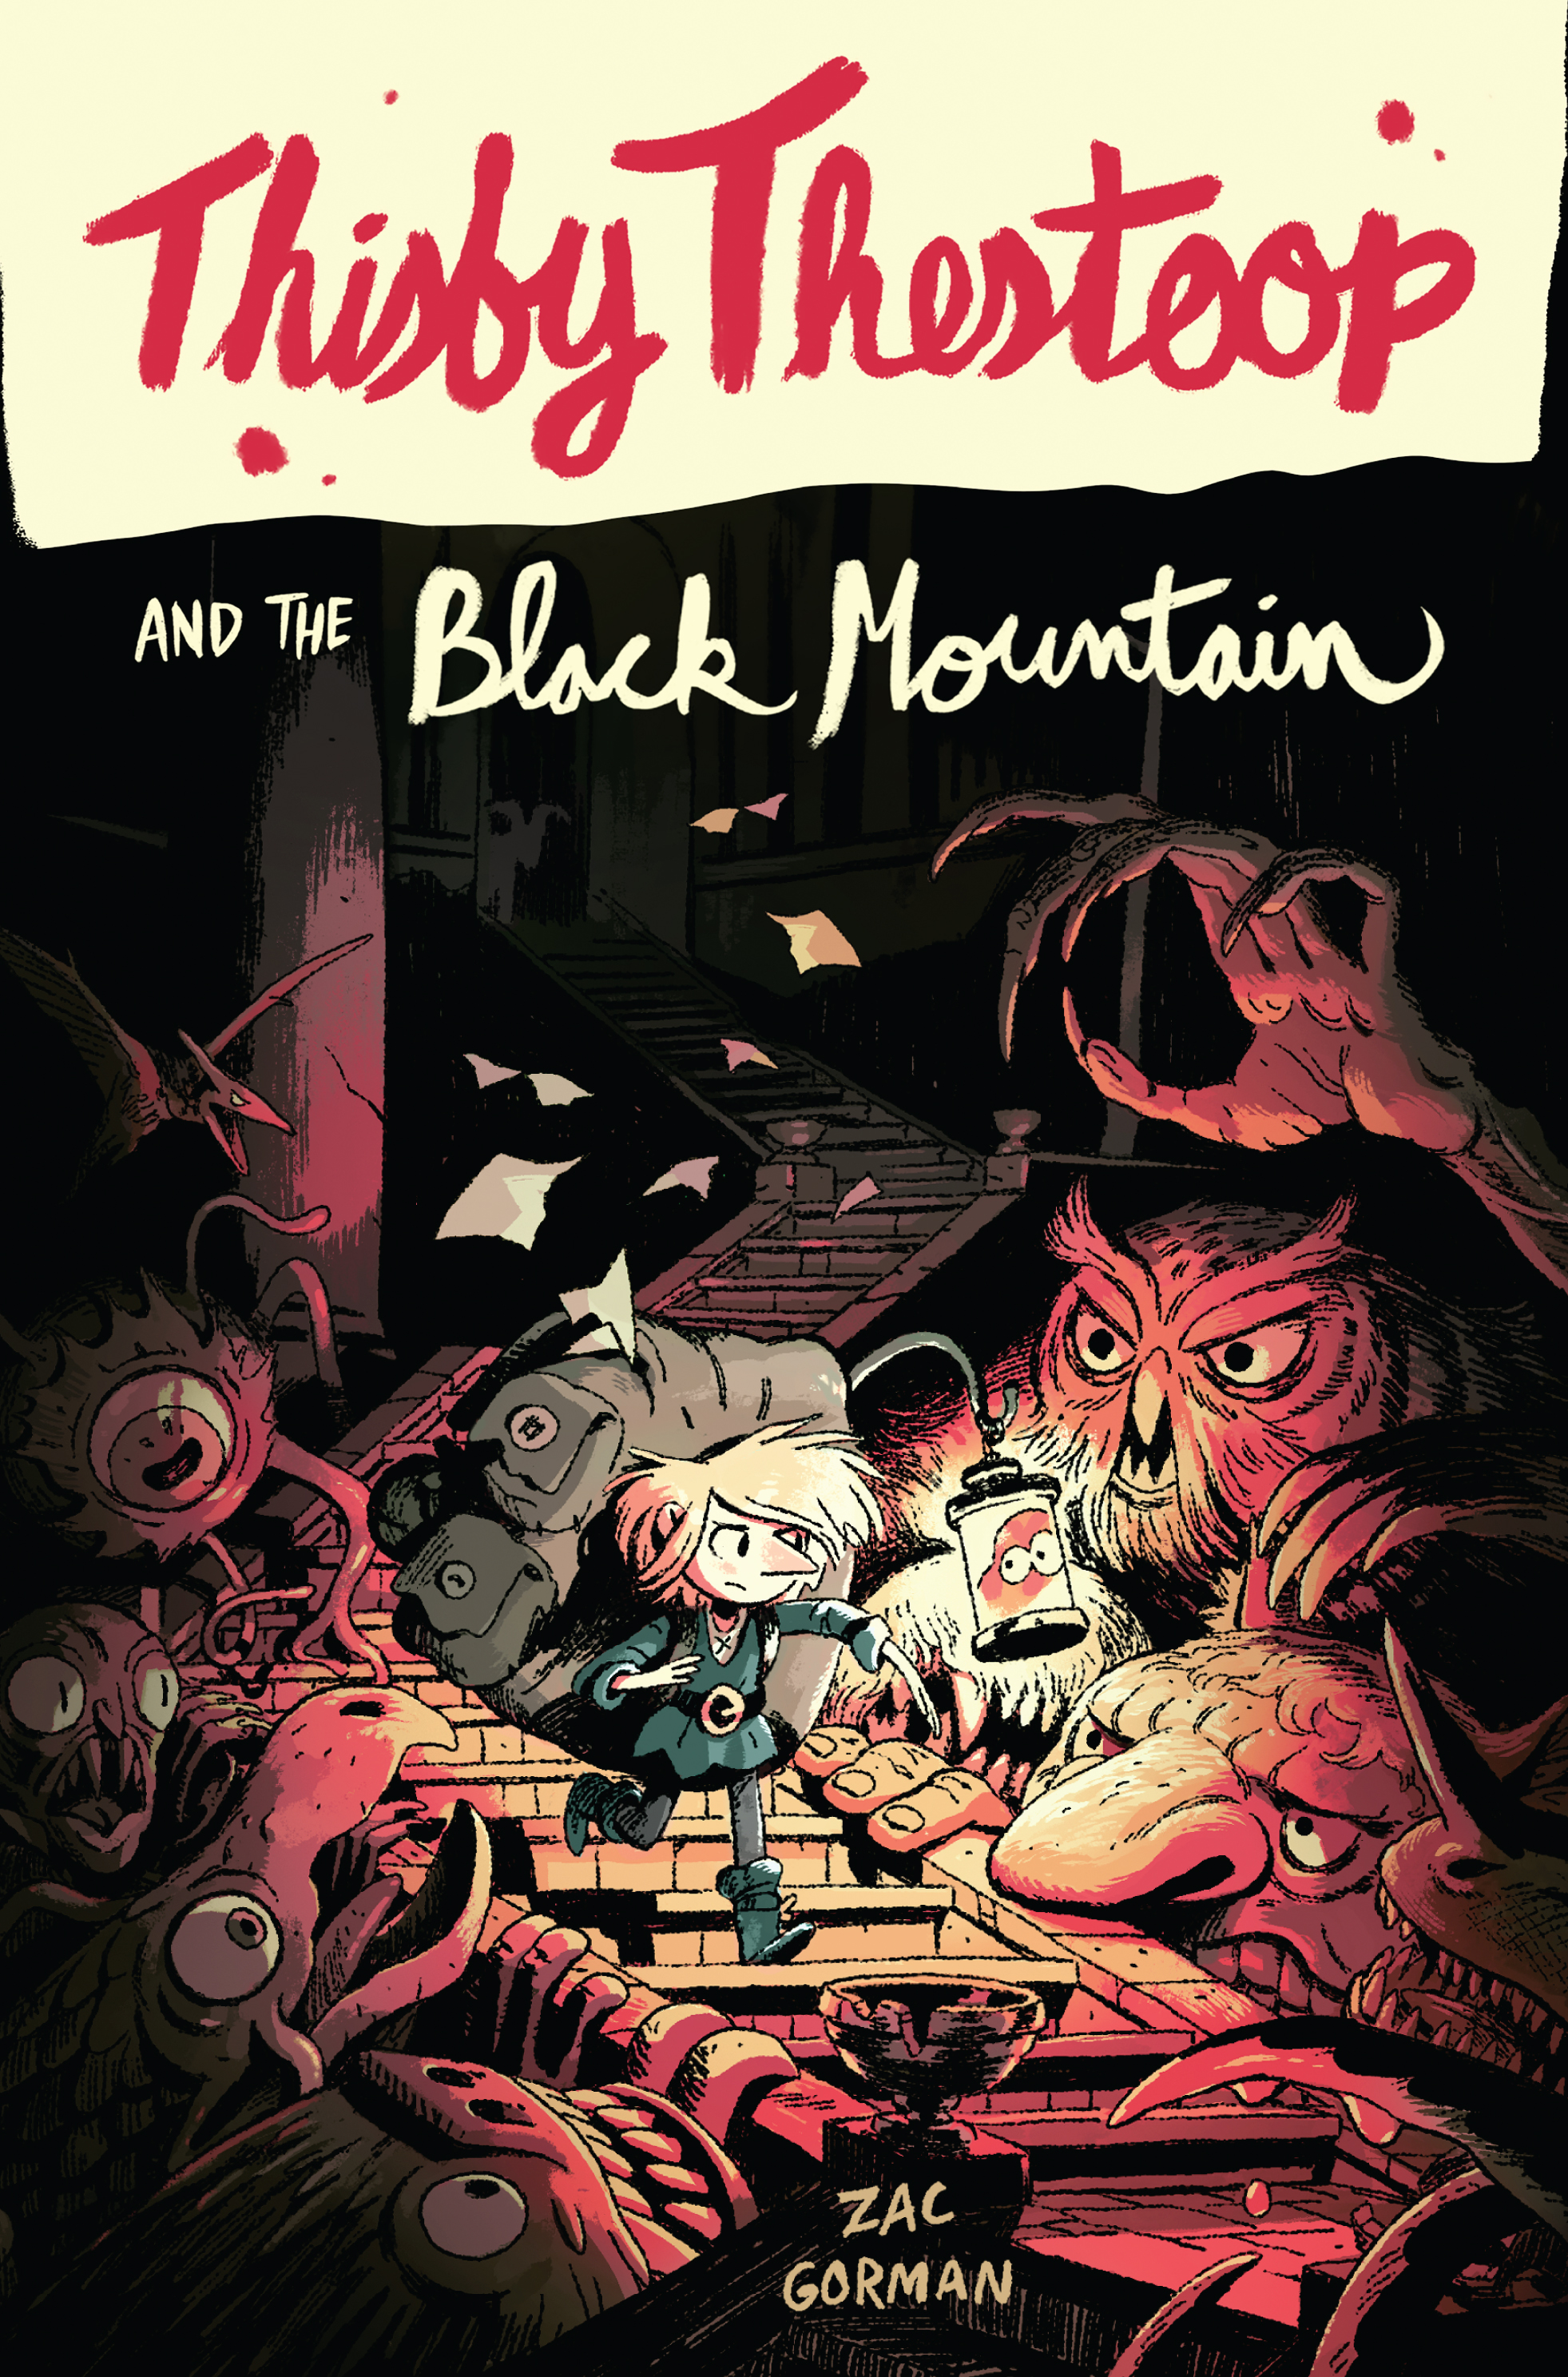 THISBY THESTOOP AND THE BLACK MOUNTAIN by Zac Gorman, art by Sam Bosma (HarperCollins, Apr 2018)